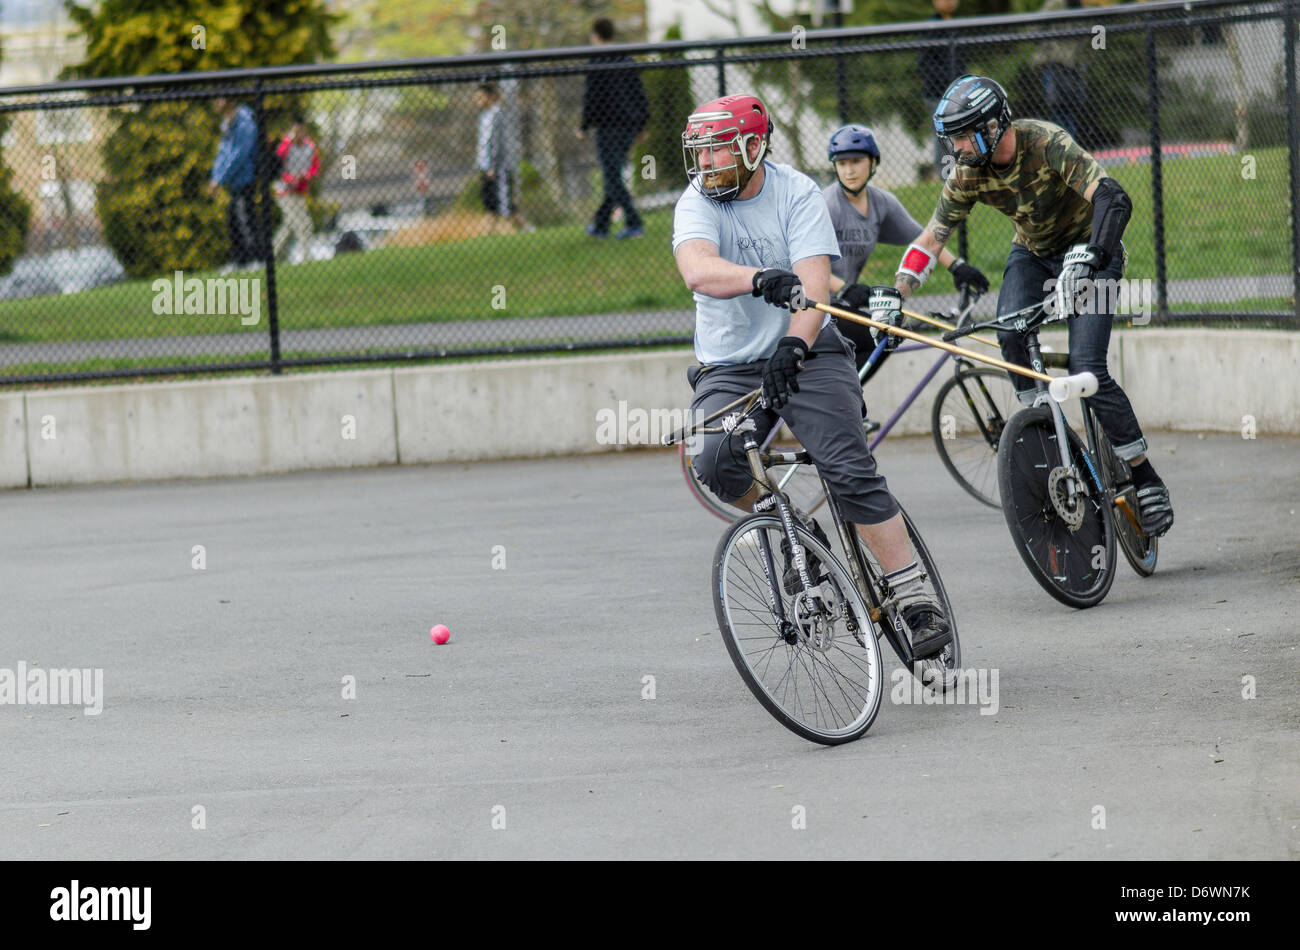 Bicycle polo match, Grandview Park, Vancouver, BC, Canada - Stock Image